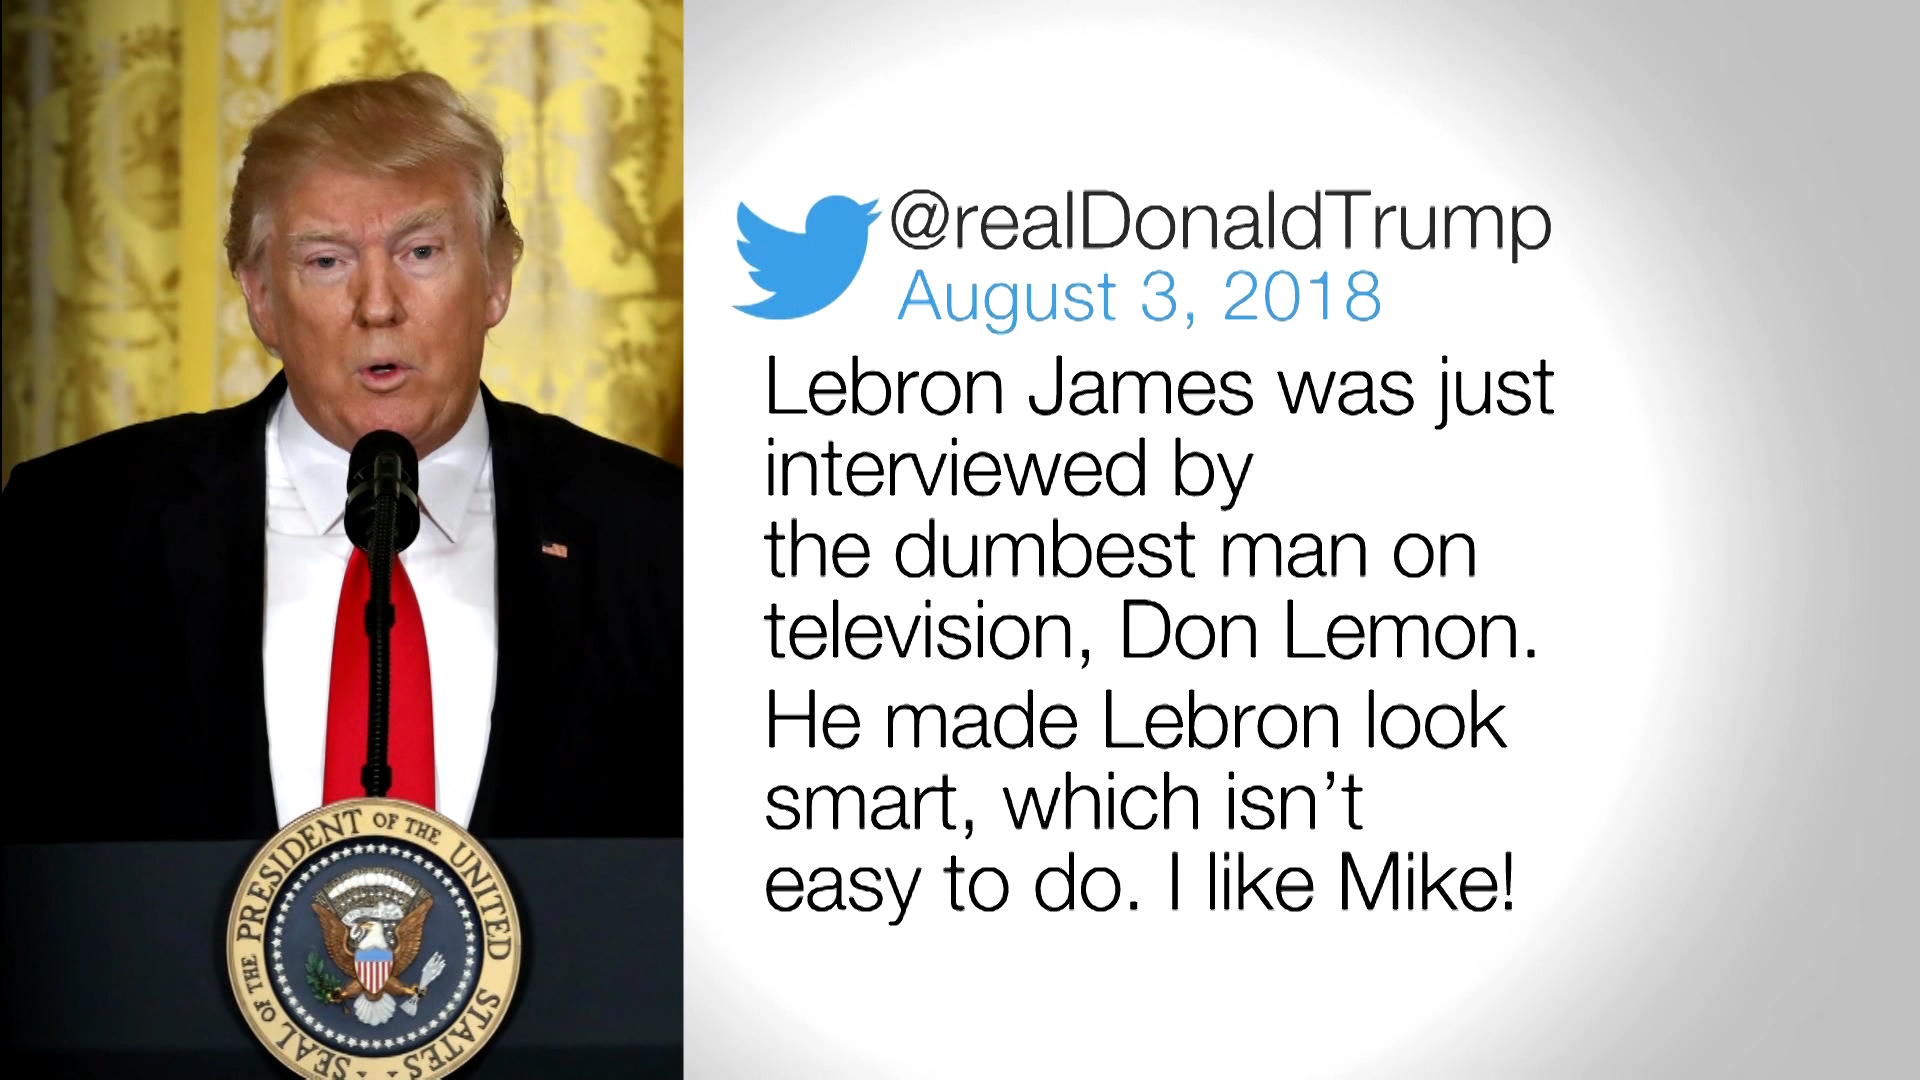 ad19eb08a64a First Lady Melania Trump praises LeBron James after Donald Trump insults  him